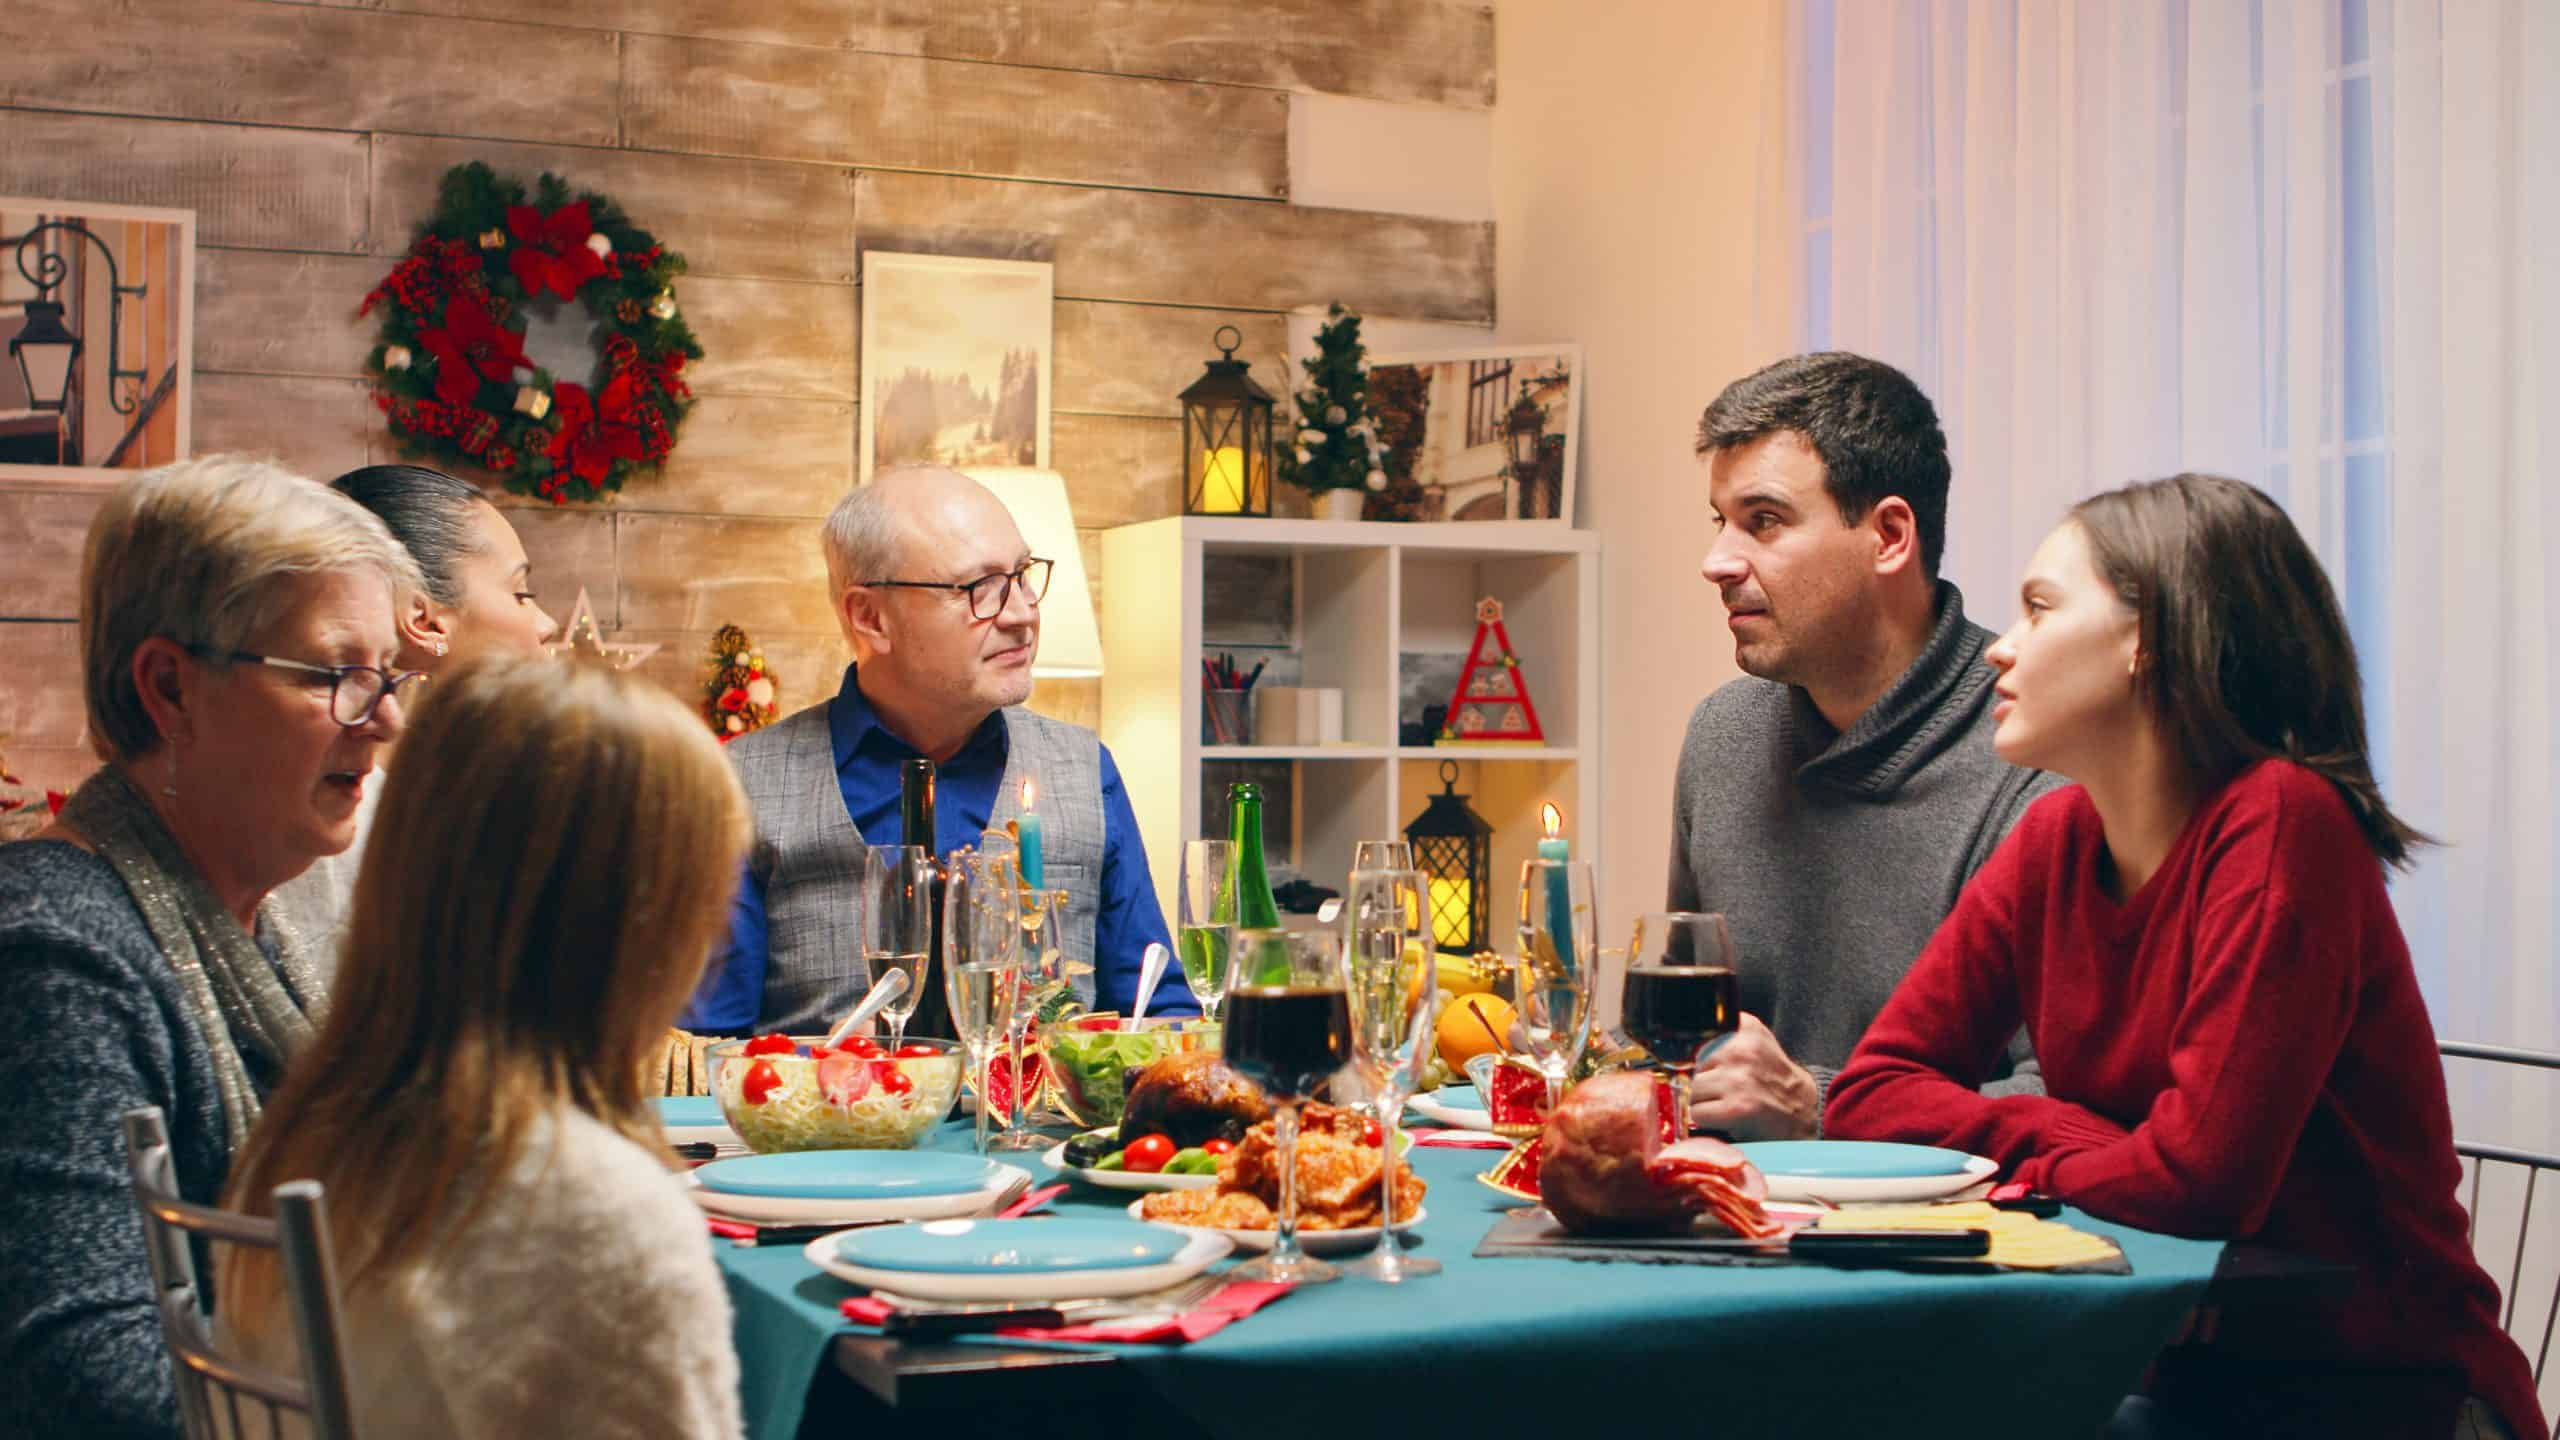 Advice On Holiday Stress family dinner arcarapsychiatry.com Arcara Psychiatry in Boston and Westborough